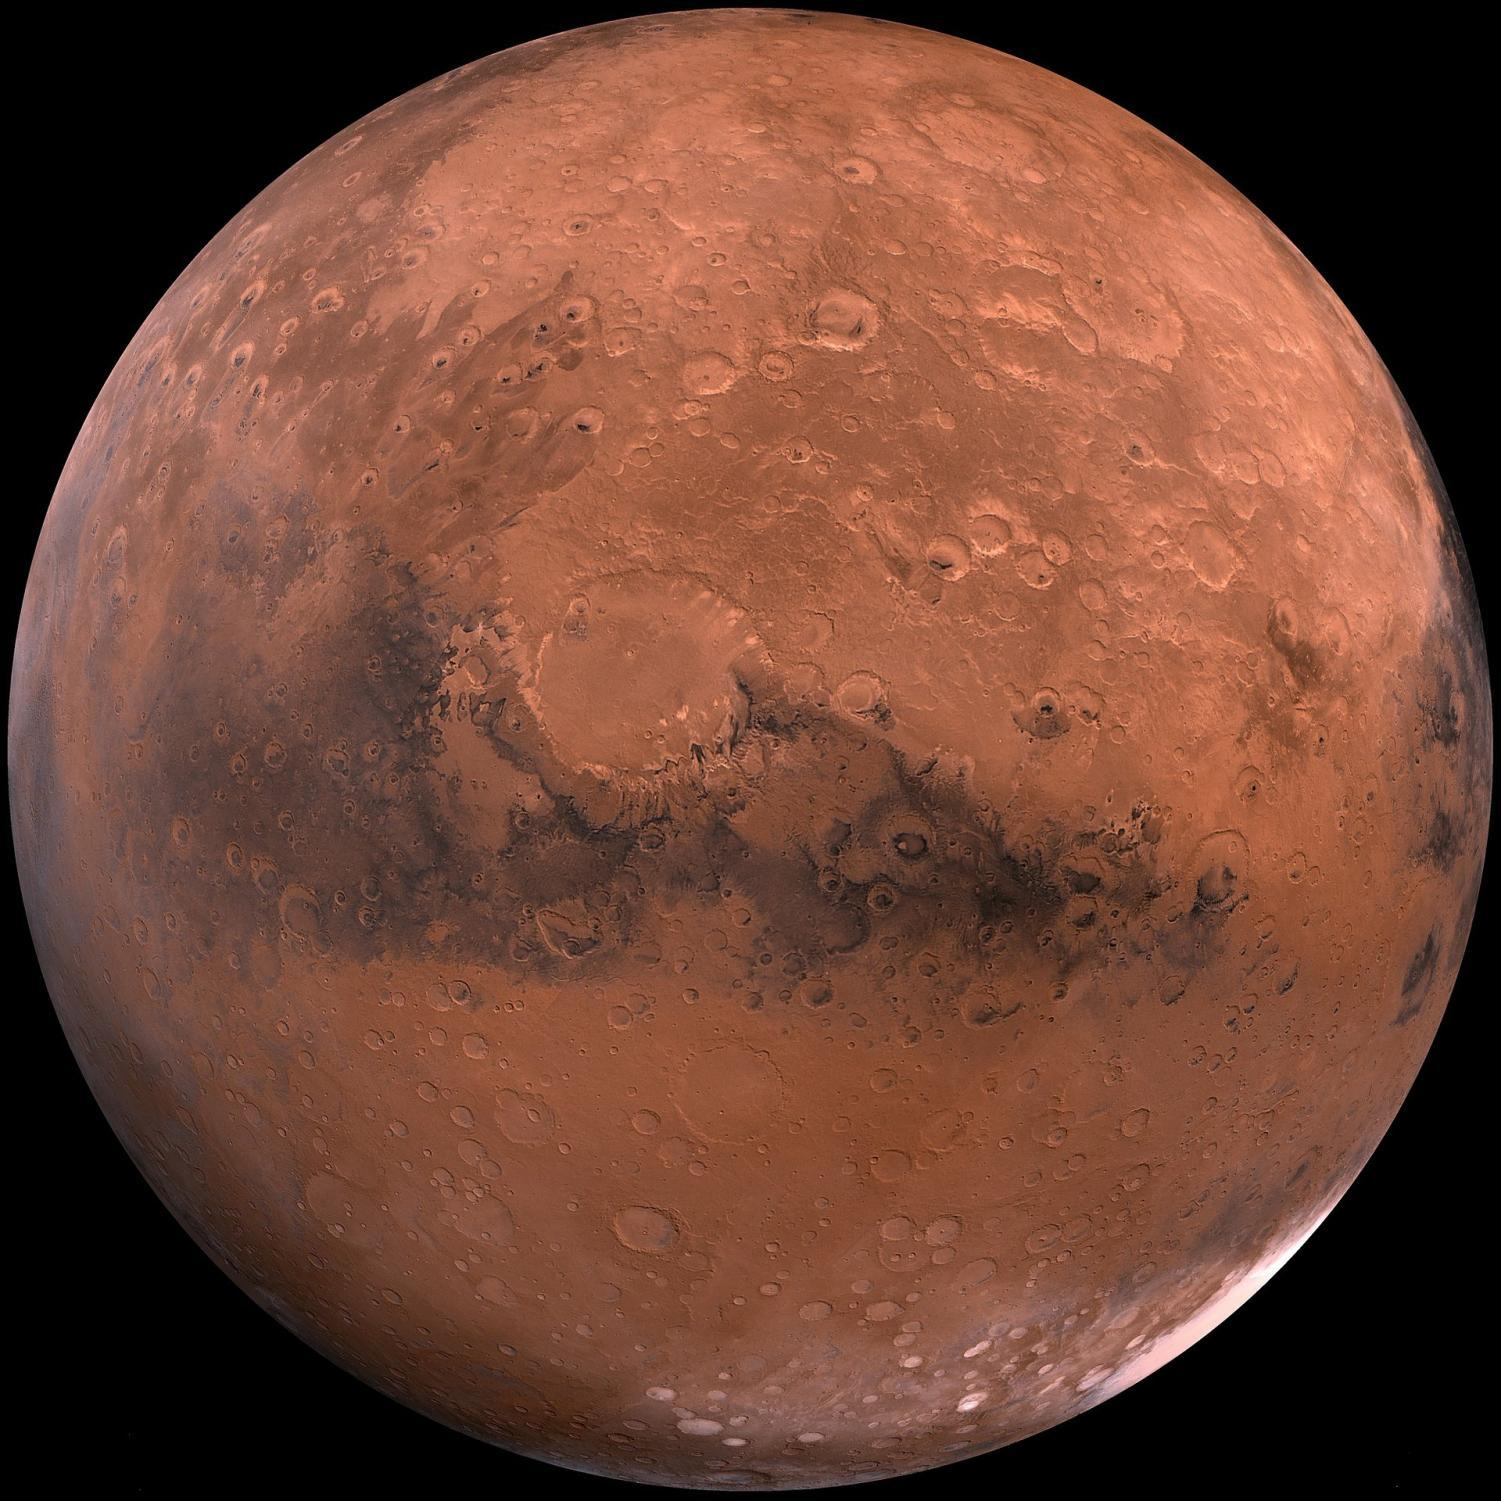 The face of Mars seen from outer space. Some ice can be seen at the poles.